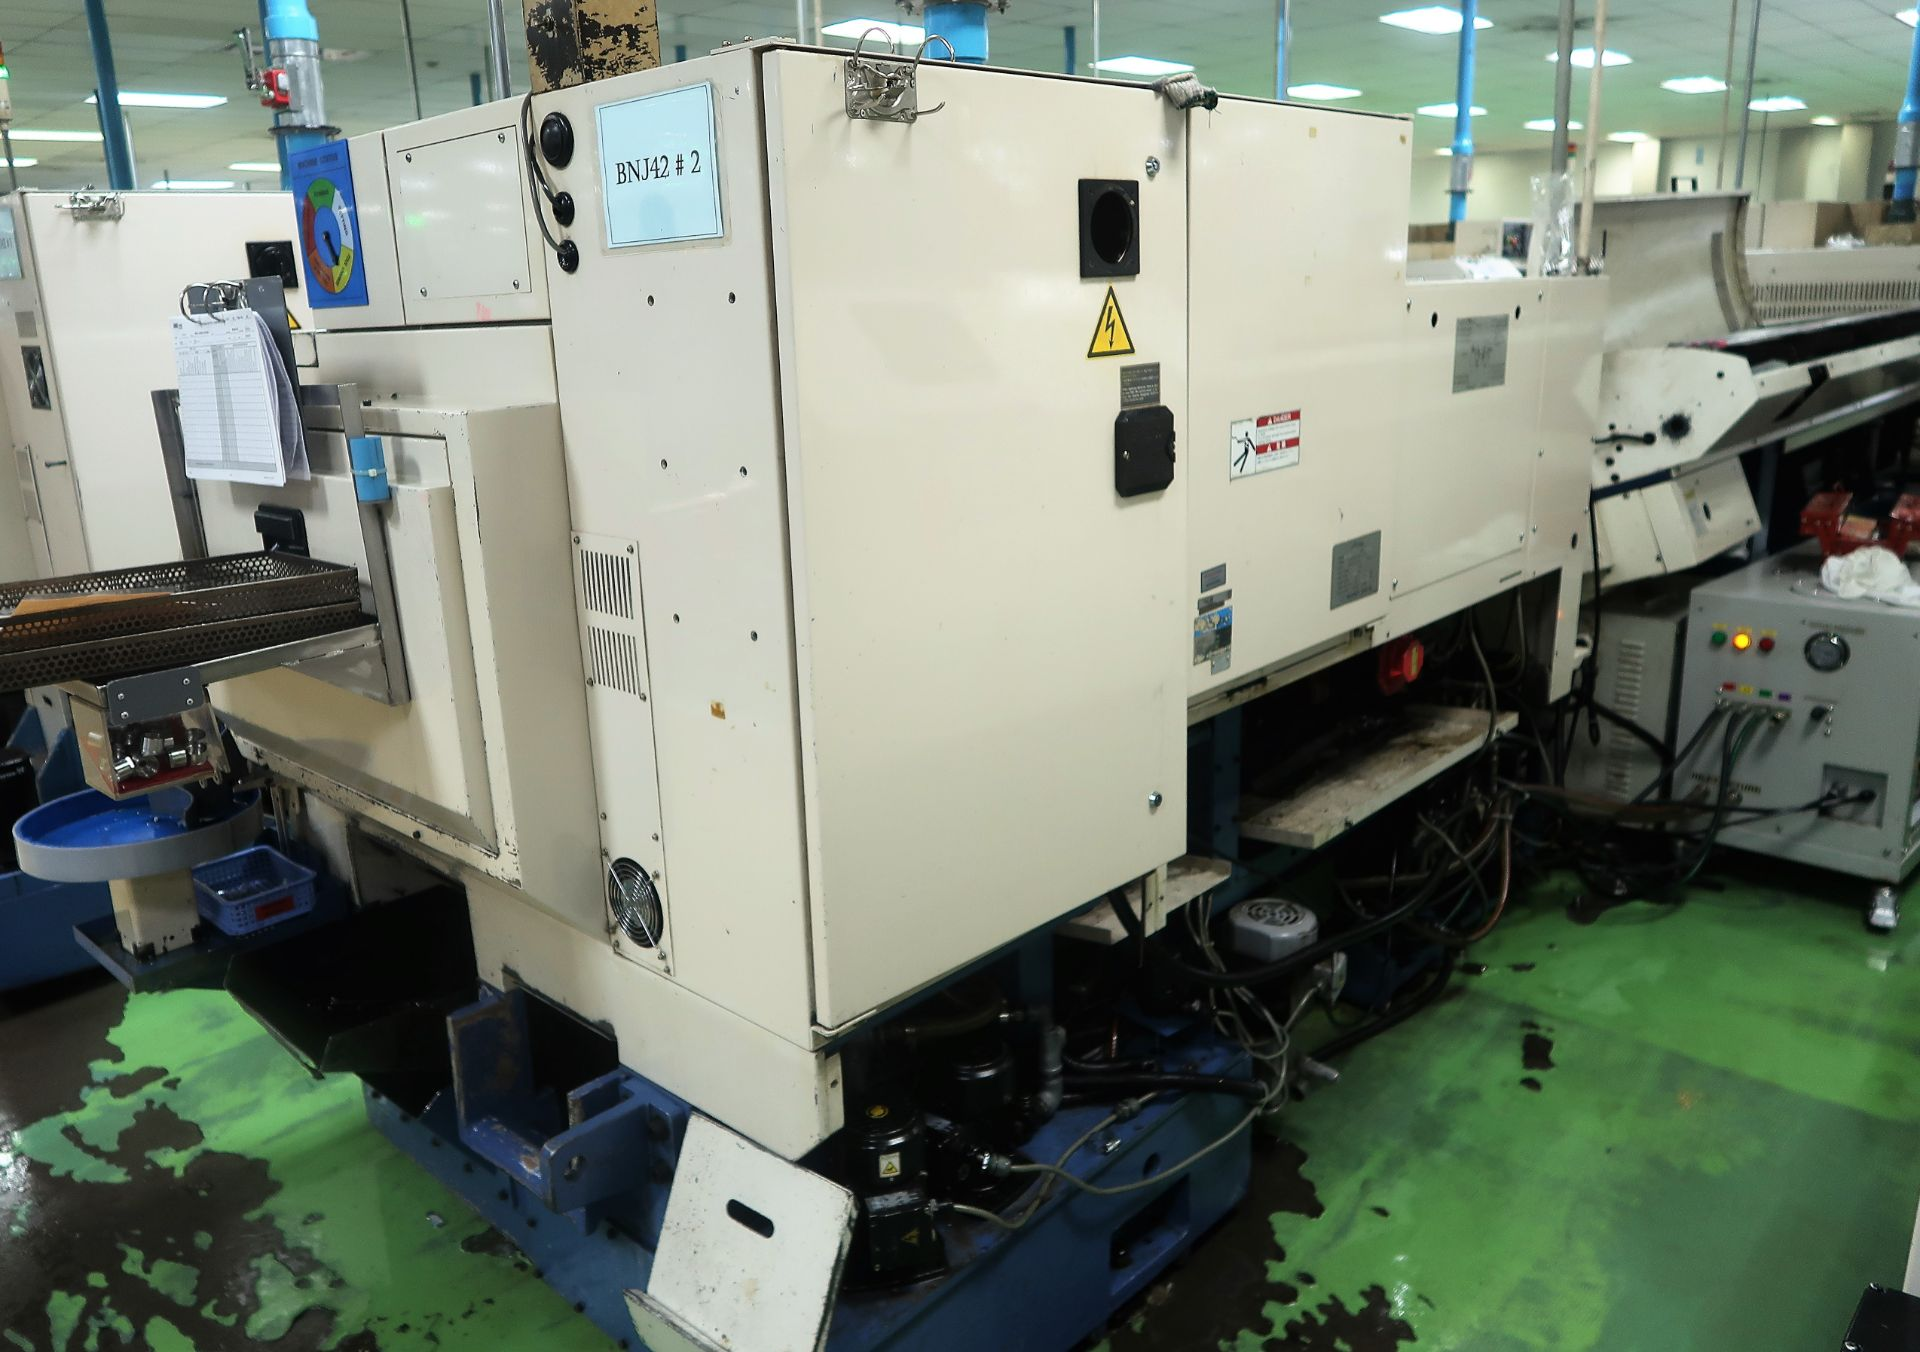 Lot 48 - Miyano BNJ-42S, 2 Spindles, 2 Turrets, Live Tools, C-Axis, Lathe, S/N BN80388S, New 2005